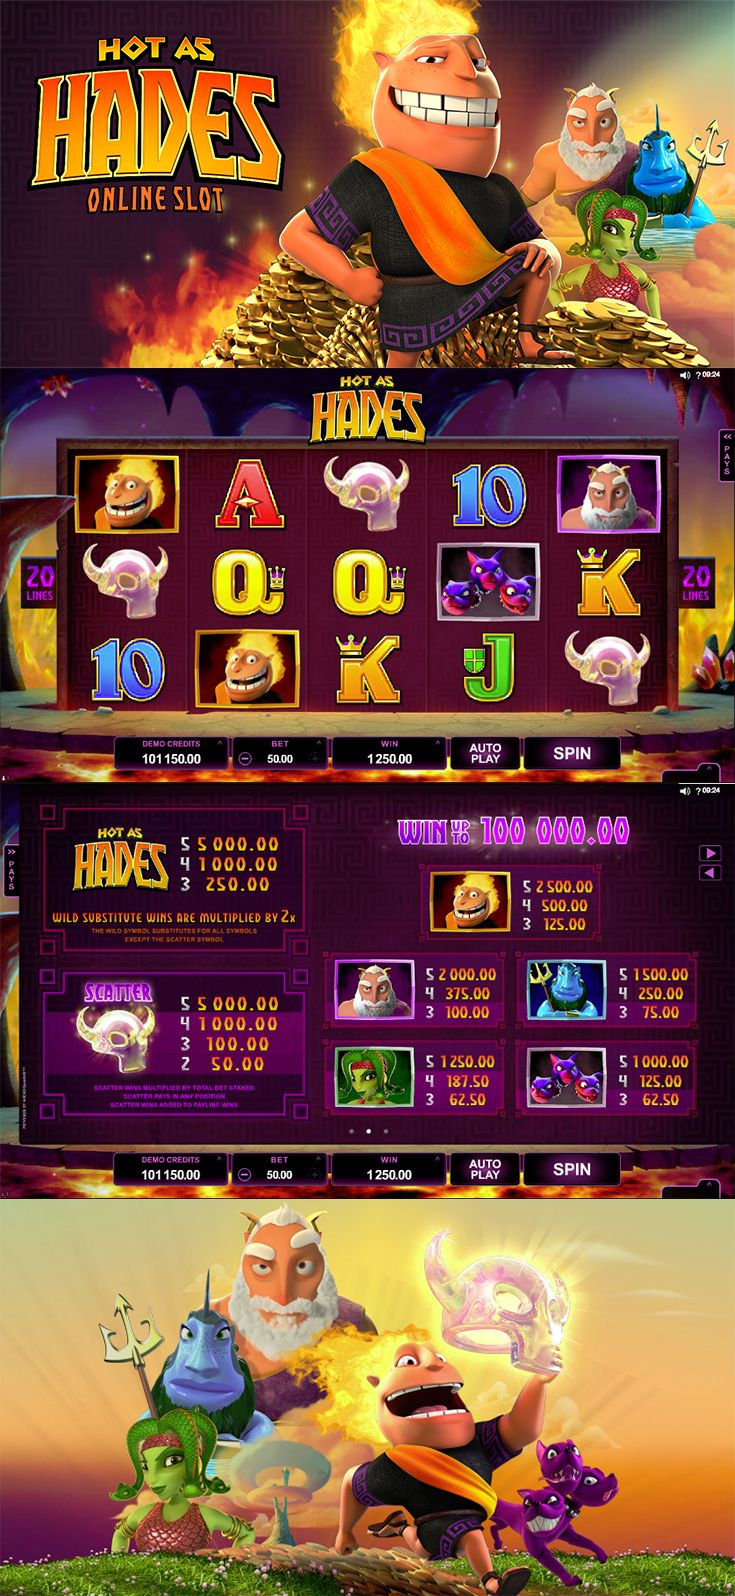 #FreeSlot | Start the weekend with a scorching free slot. Play Hot as Hades at The SpinRoom!